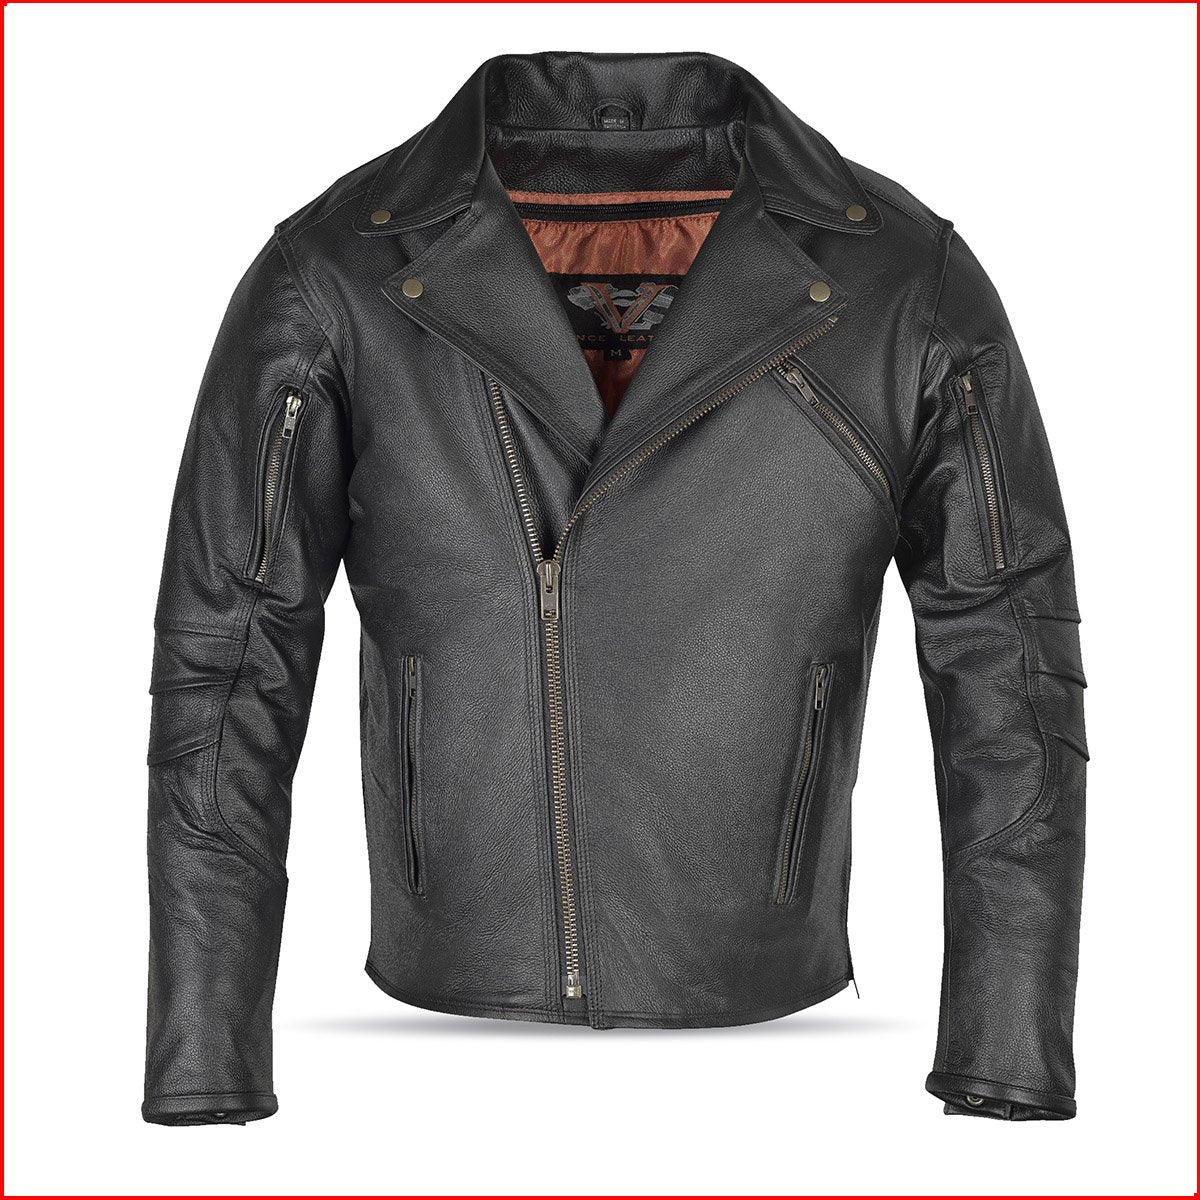 MEN'S POLICE TRIPLE STITCH LEATHER JACKET BLACK (CLOSEOUT)